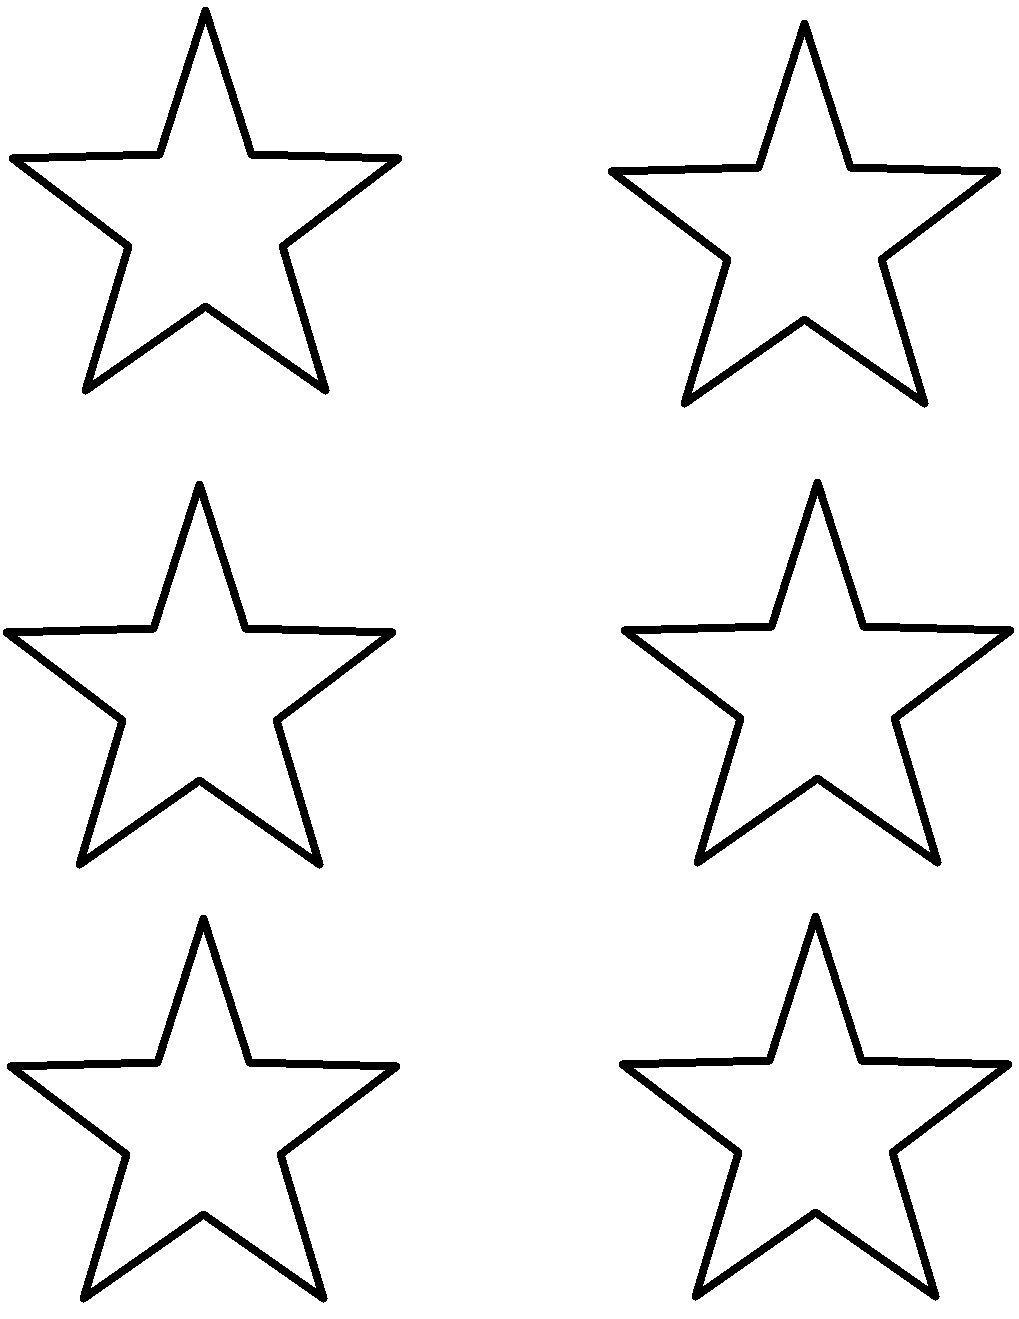 printable pictures of stars writeshop level b printables homeschooling 6 pictures stars printable of